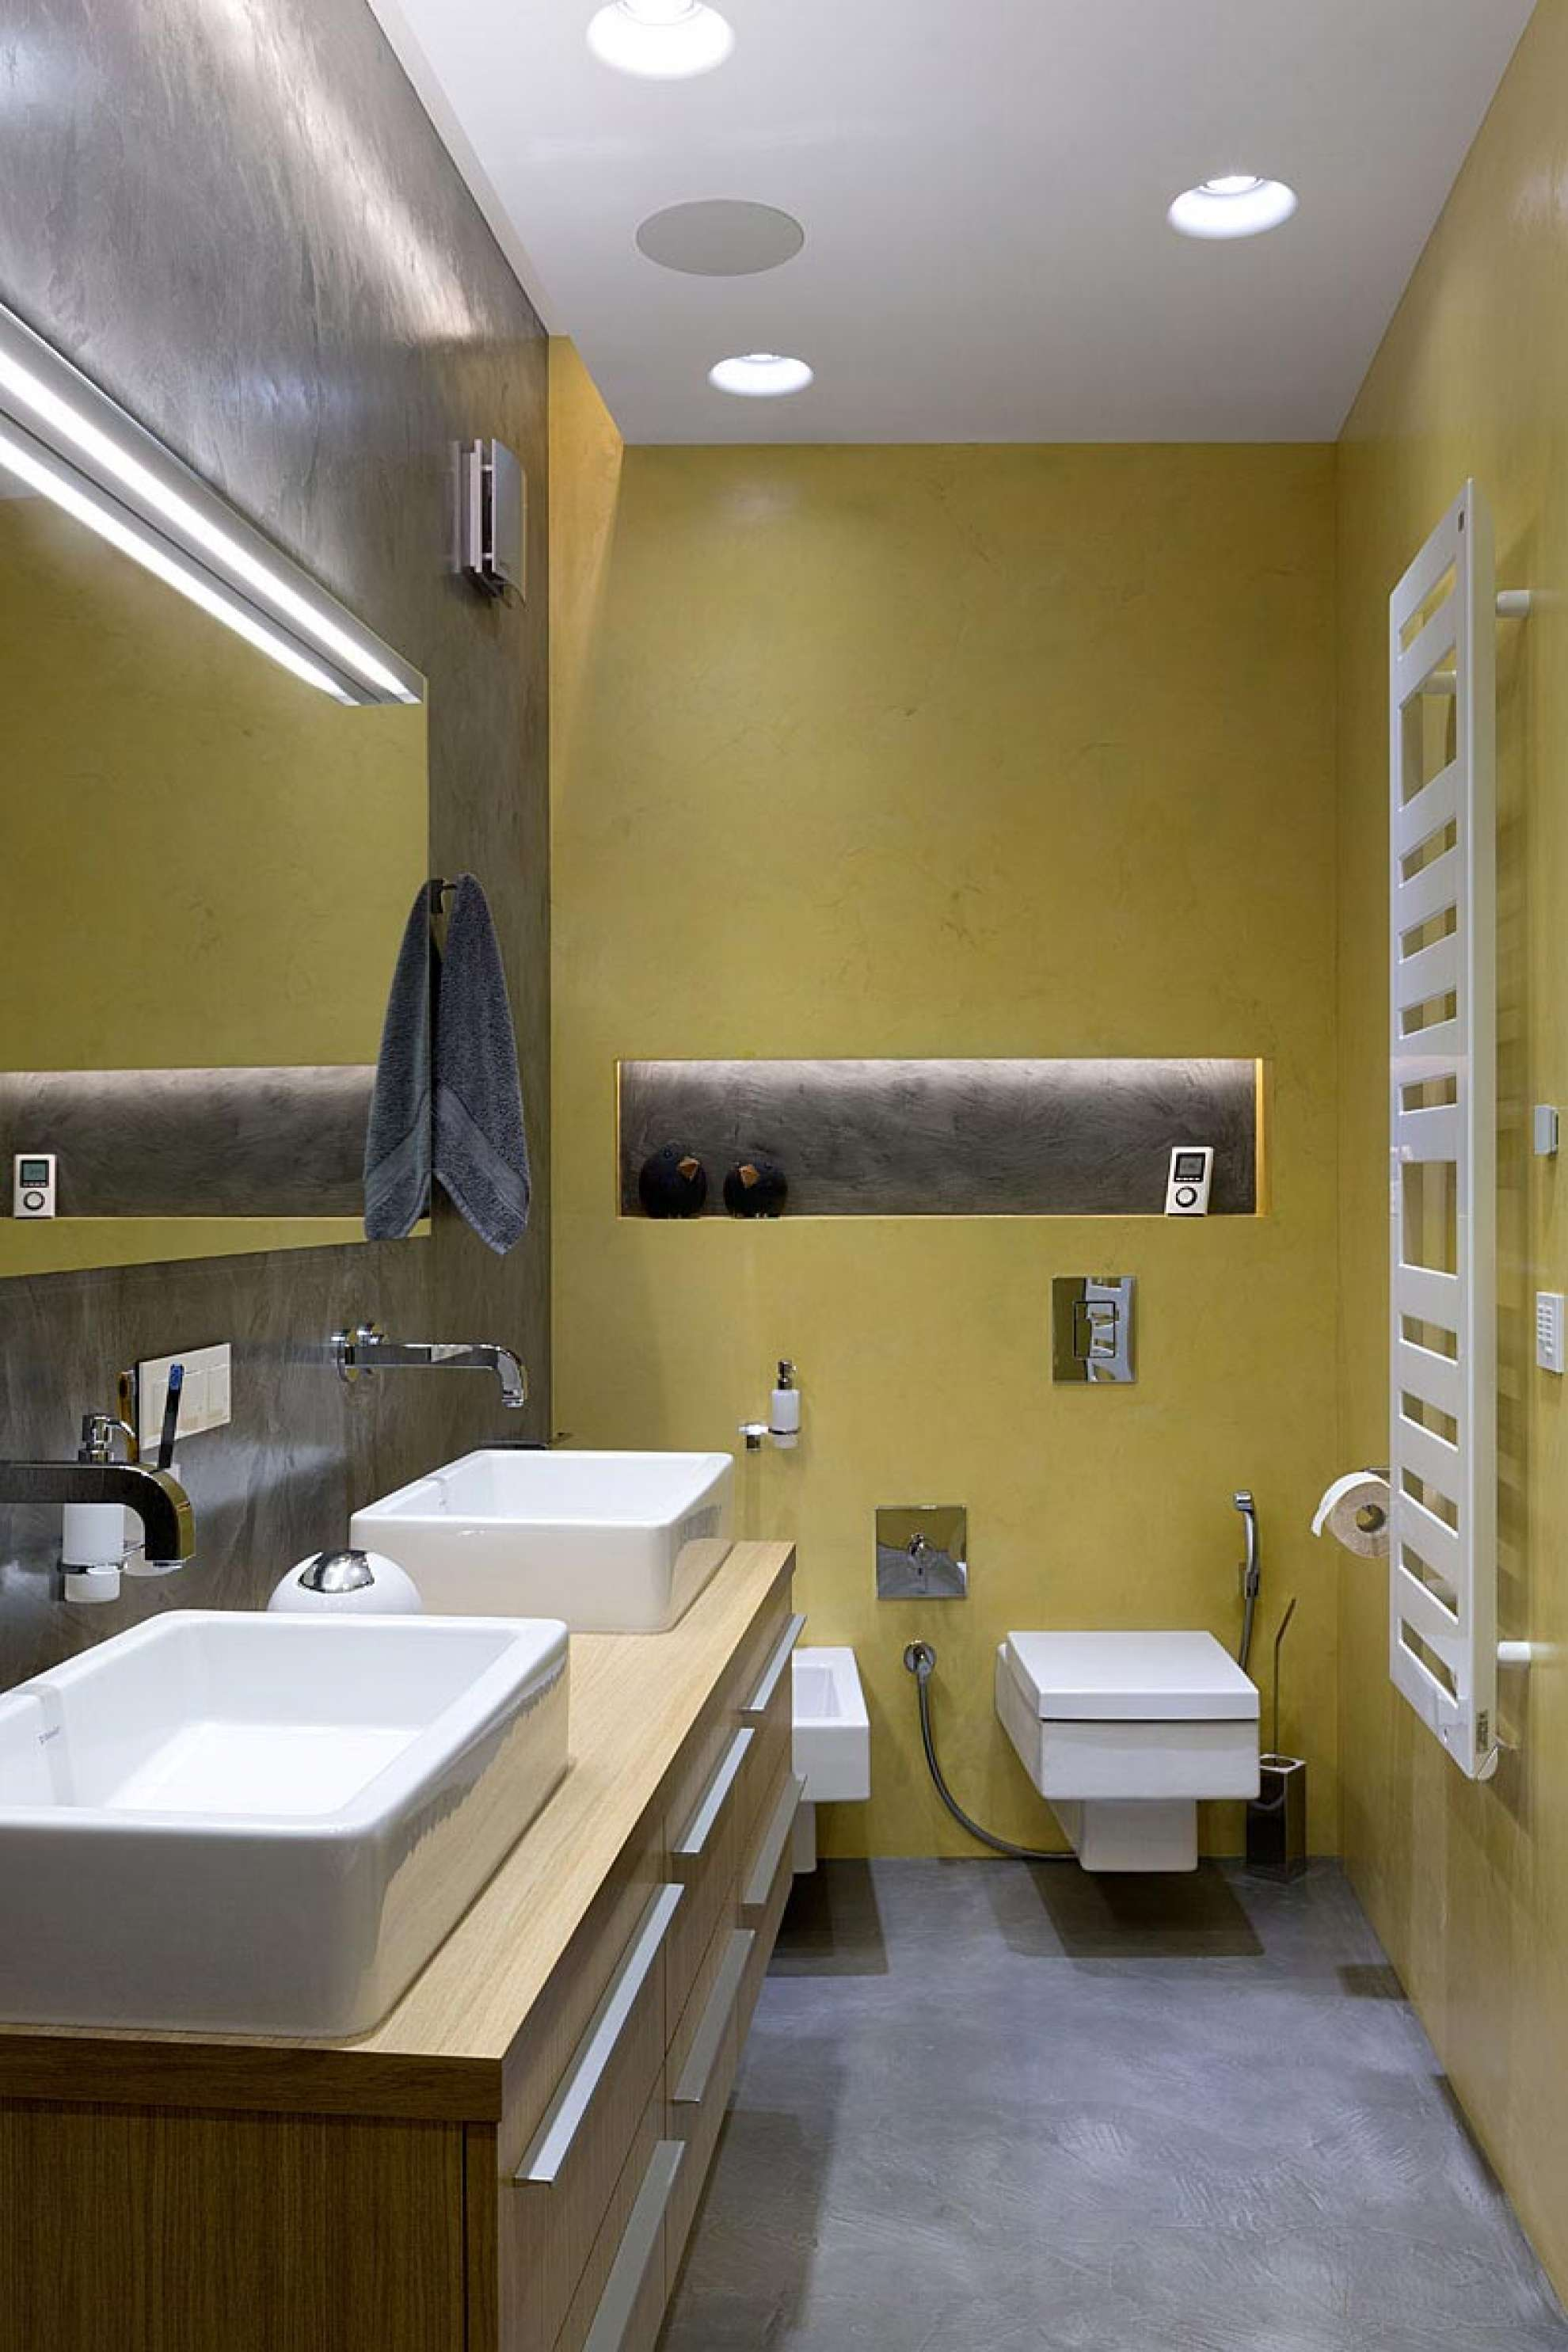 bathroom-interior-yellow.jpg